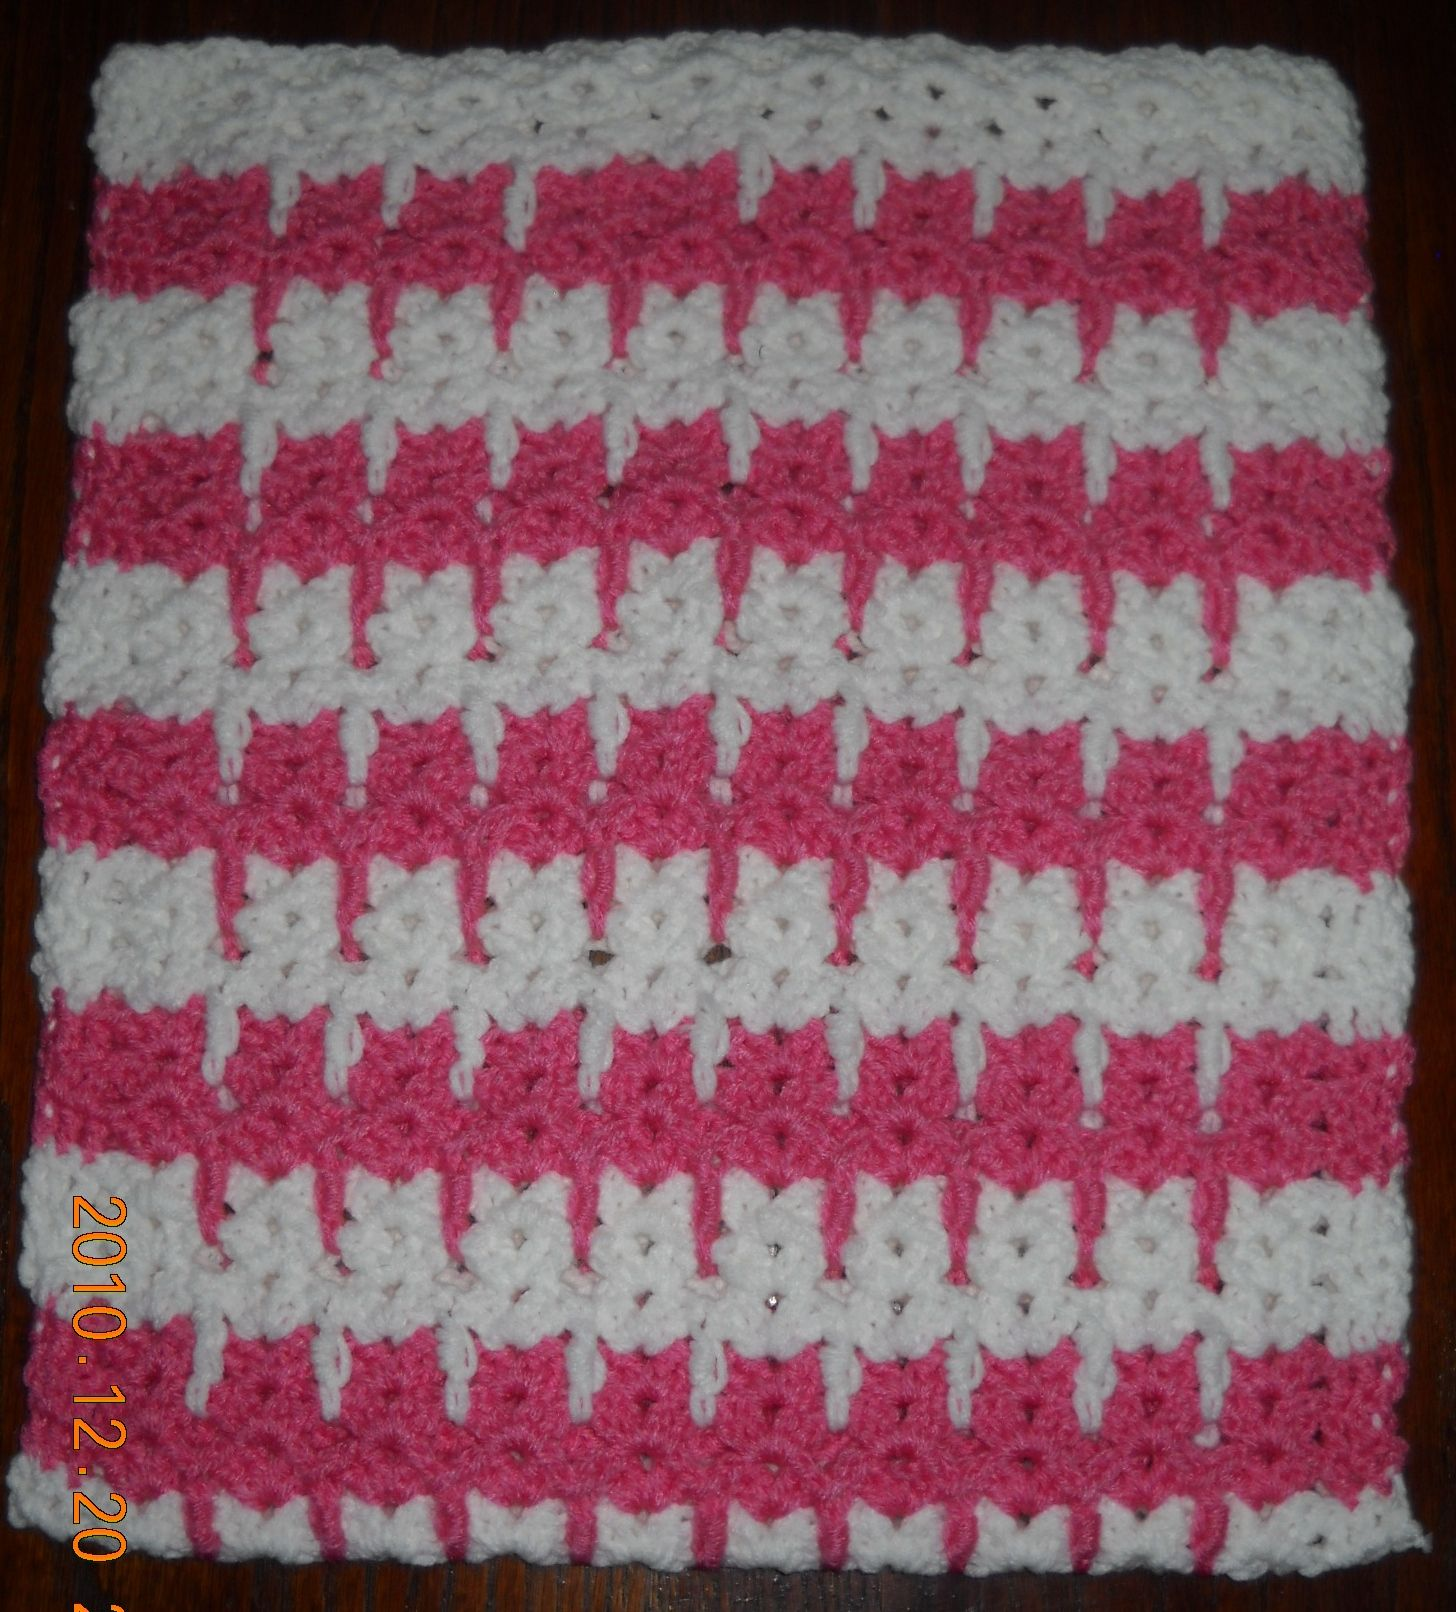 Pink and white kitty cat nap mat, for fighting against kitty cancer.